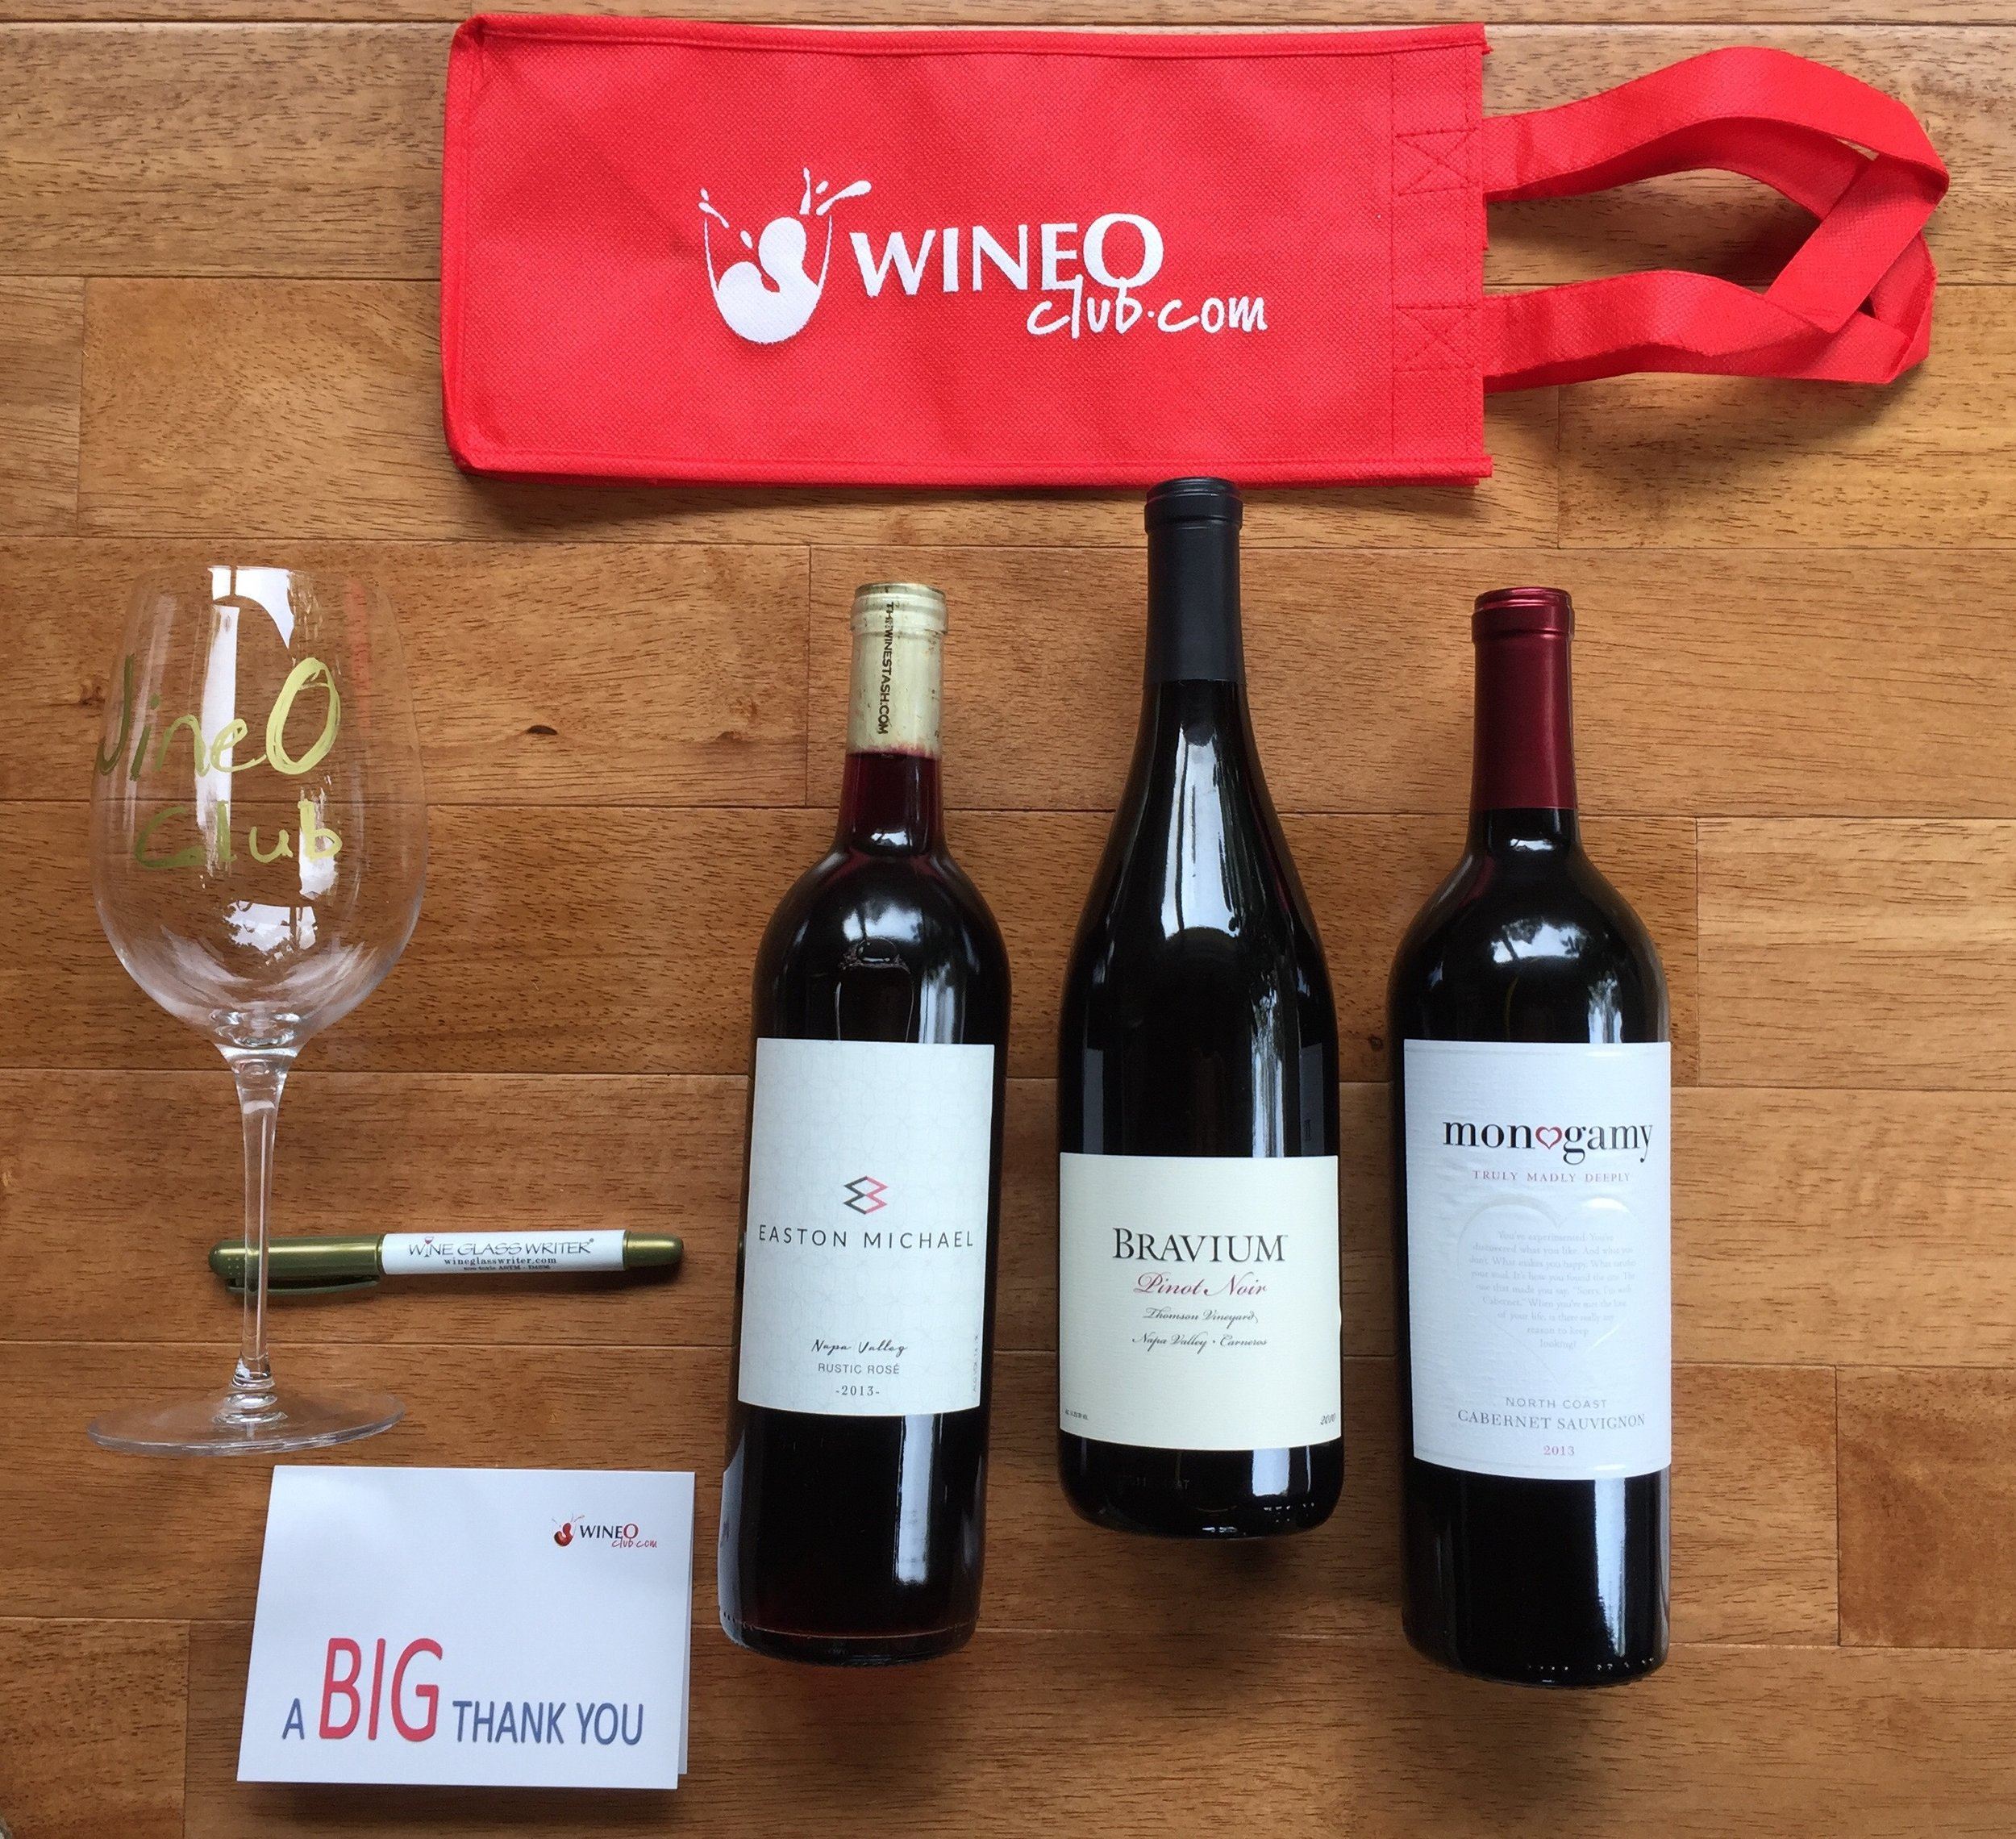 The Best Wine Club - * Four (4) Quality Wines per shipment* Amazing Value* PERSONALIZED for you* Delivery every 2, 3, or 4 months